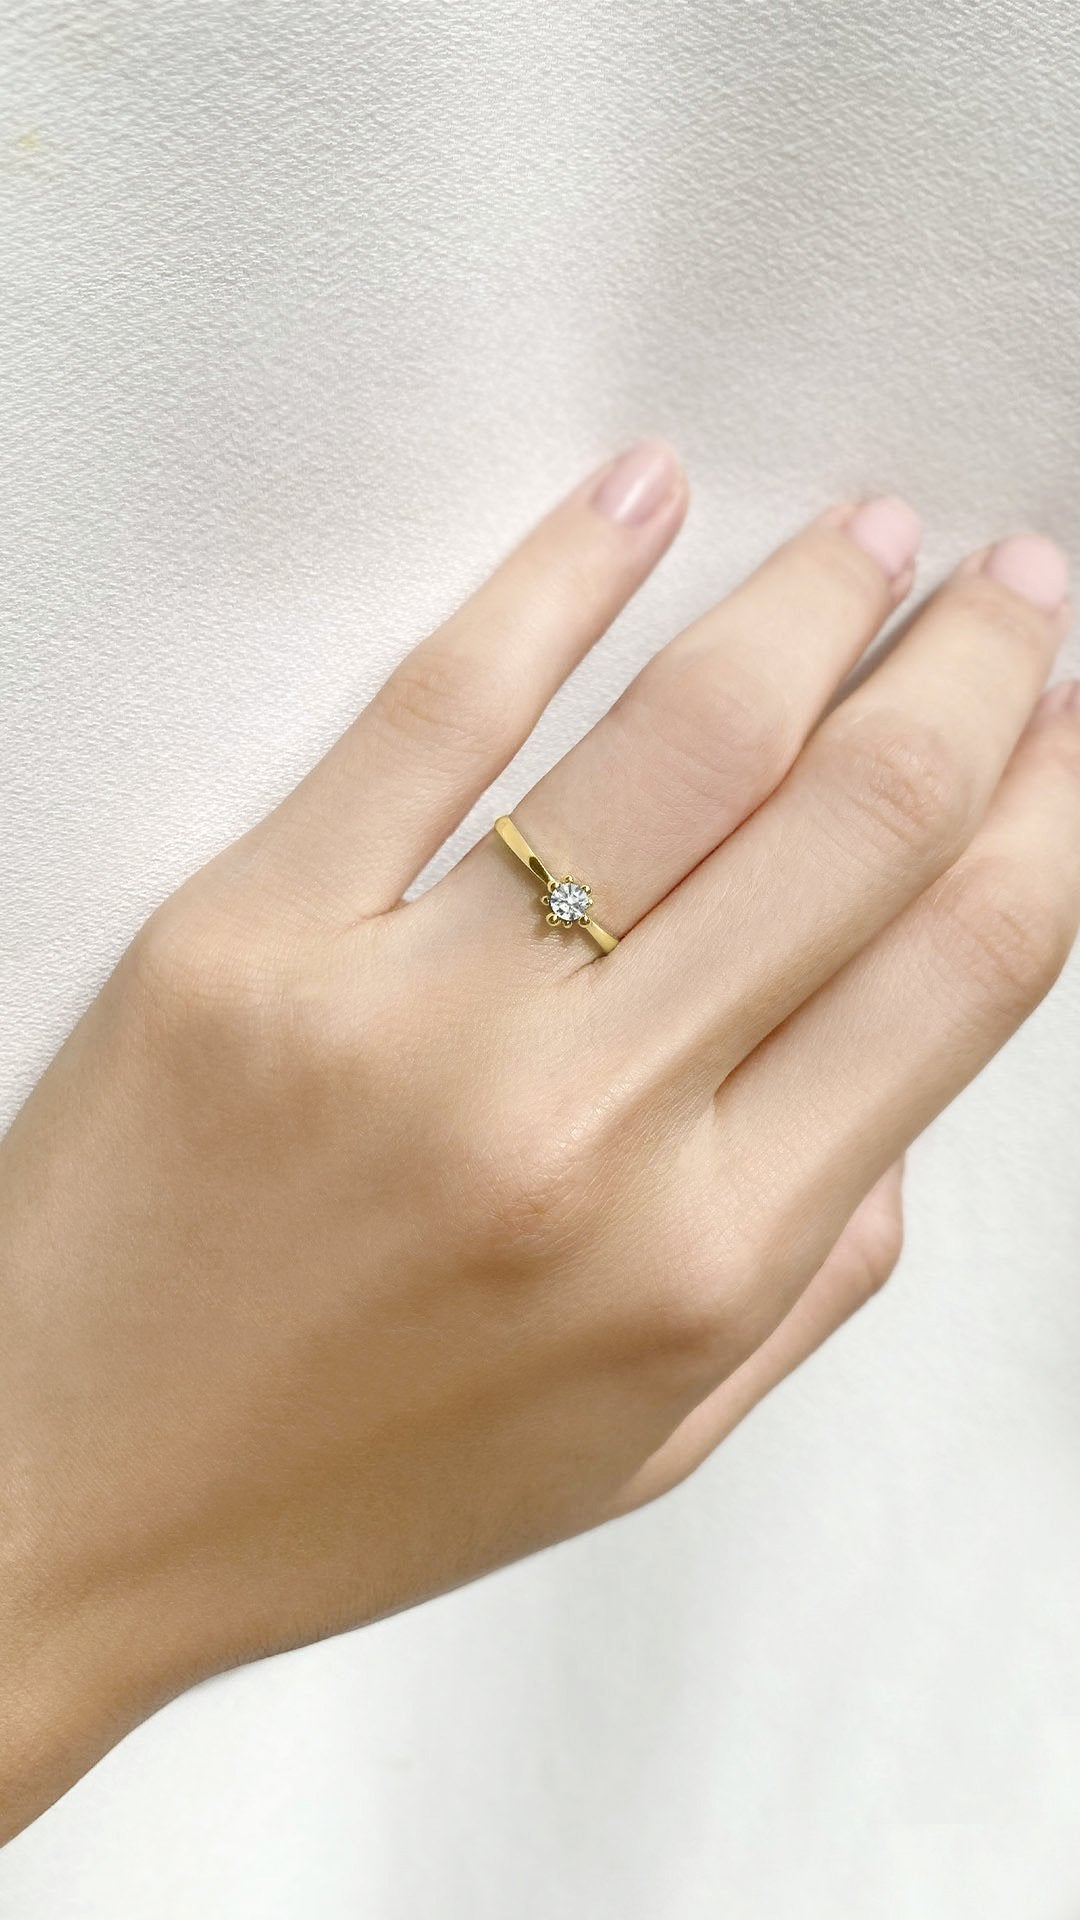 Lolita Ring 9K Yellow Gold